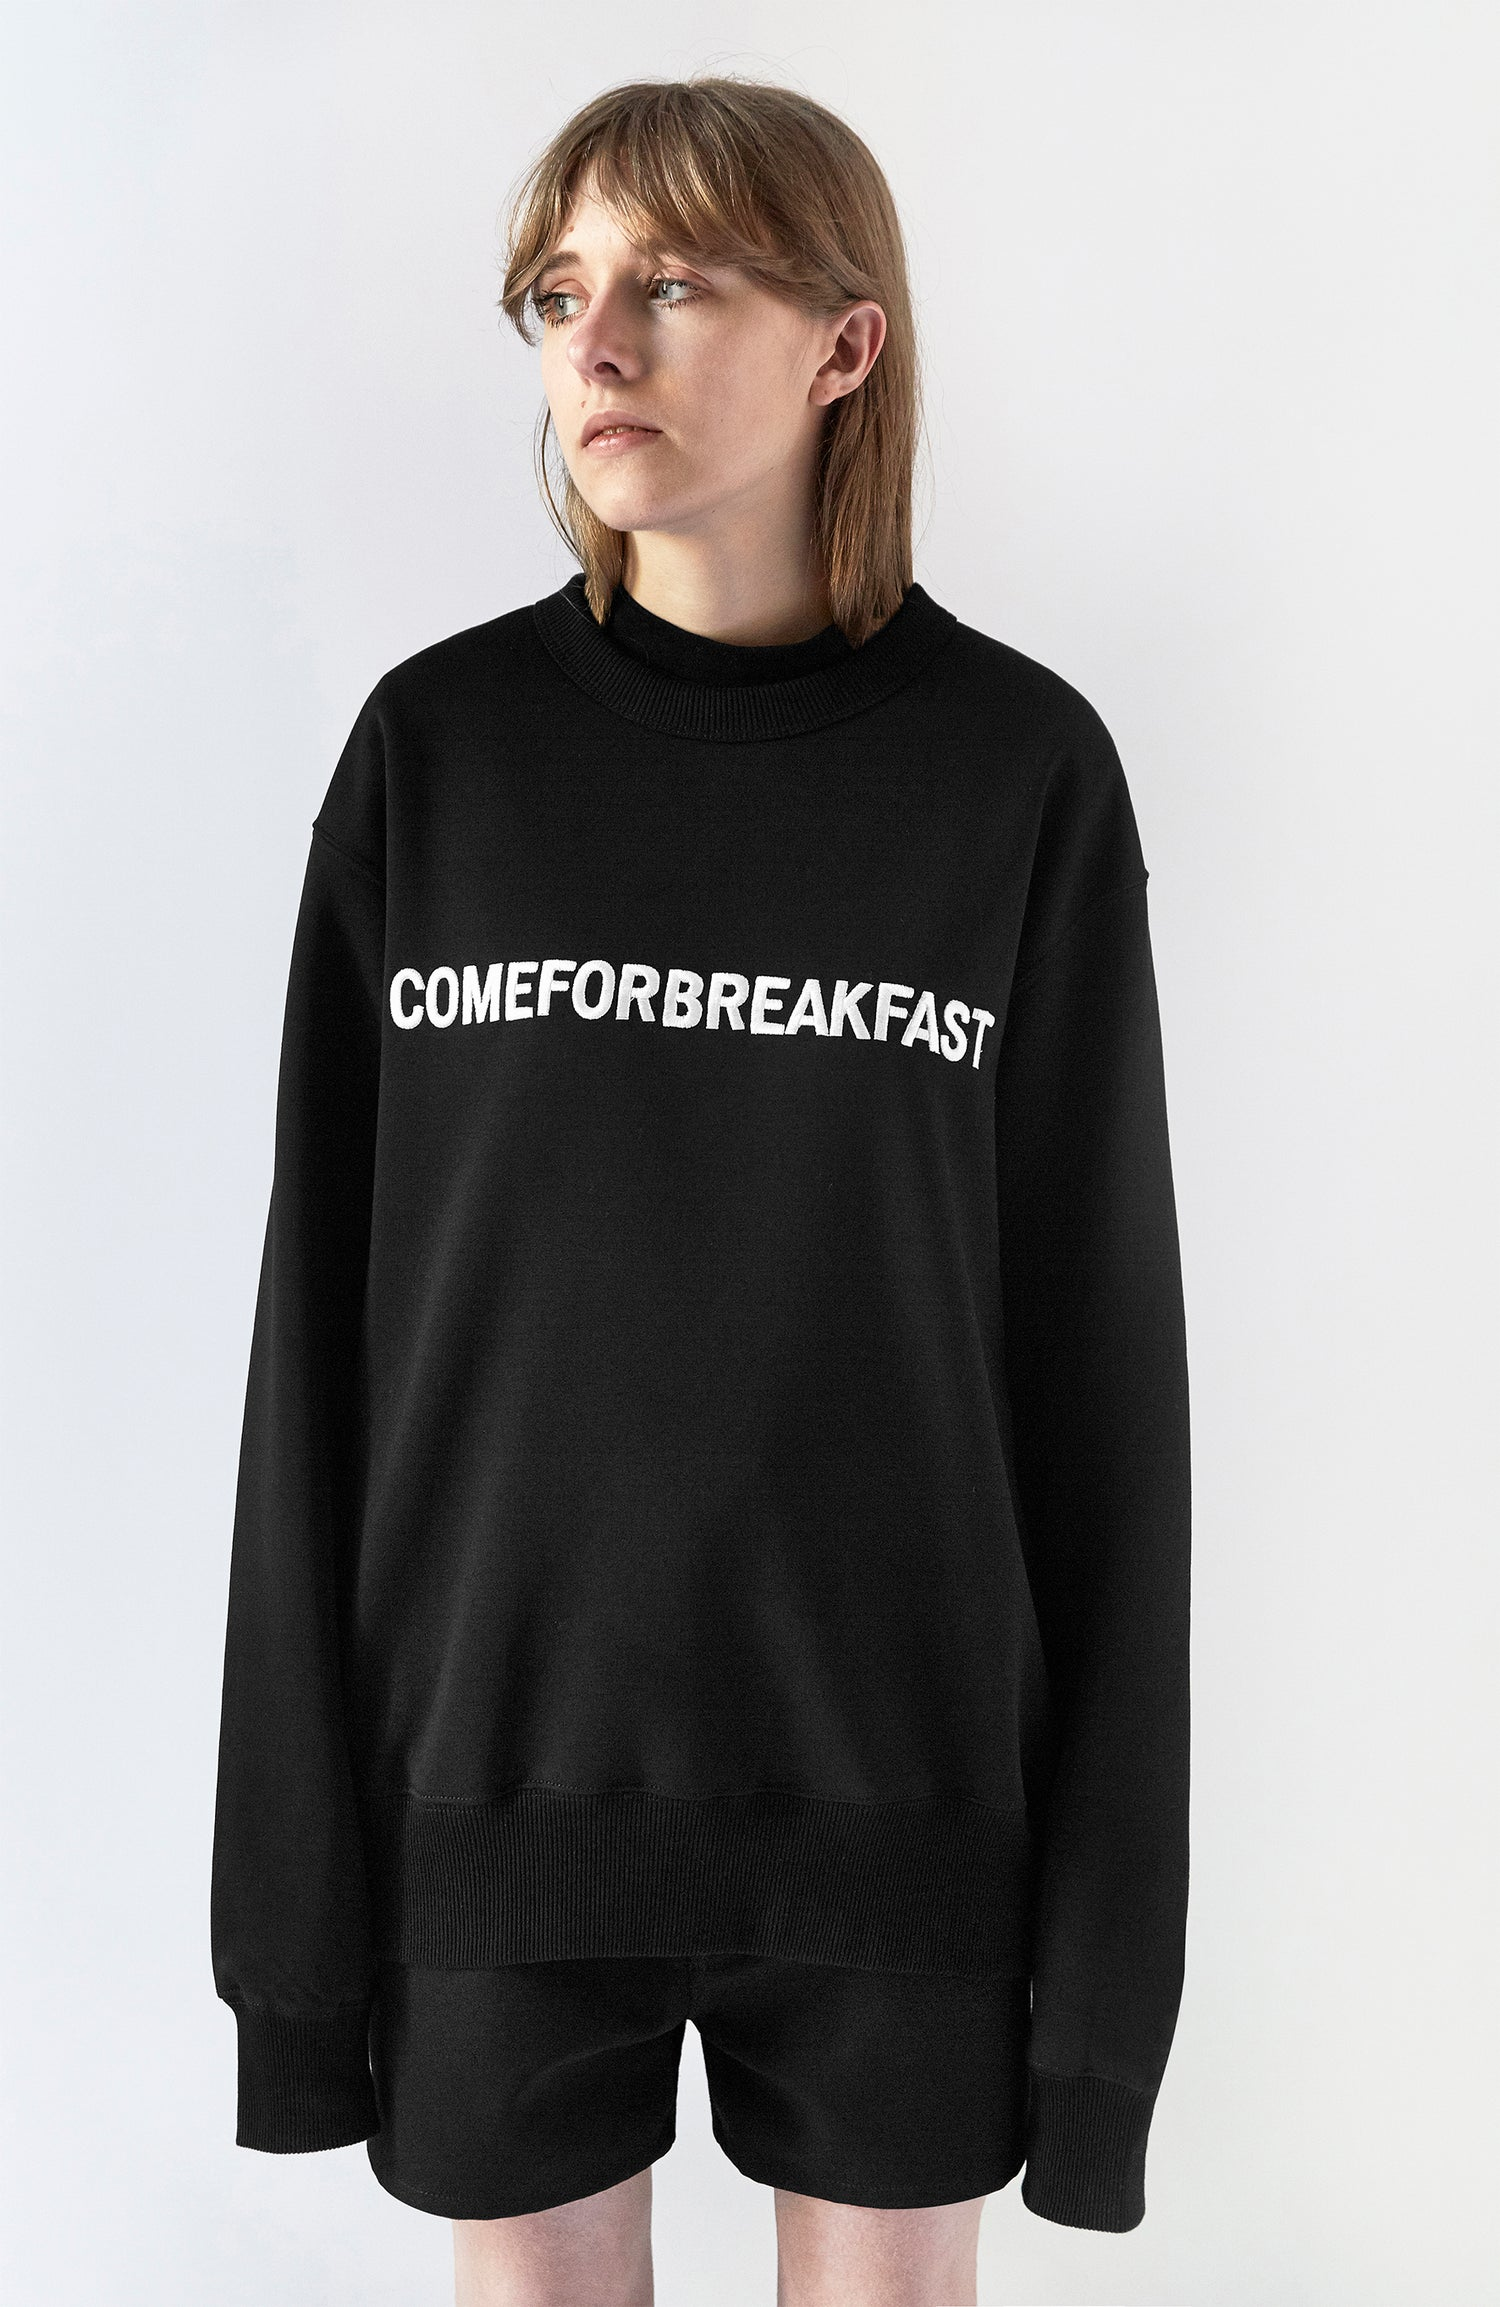 Image of SWEATSHIRT WITH WHITE EMBROIDERED LINEAR COMEFORBREAKFAST LOGO - WOMAN